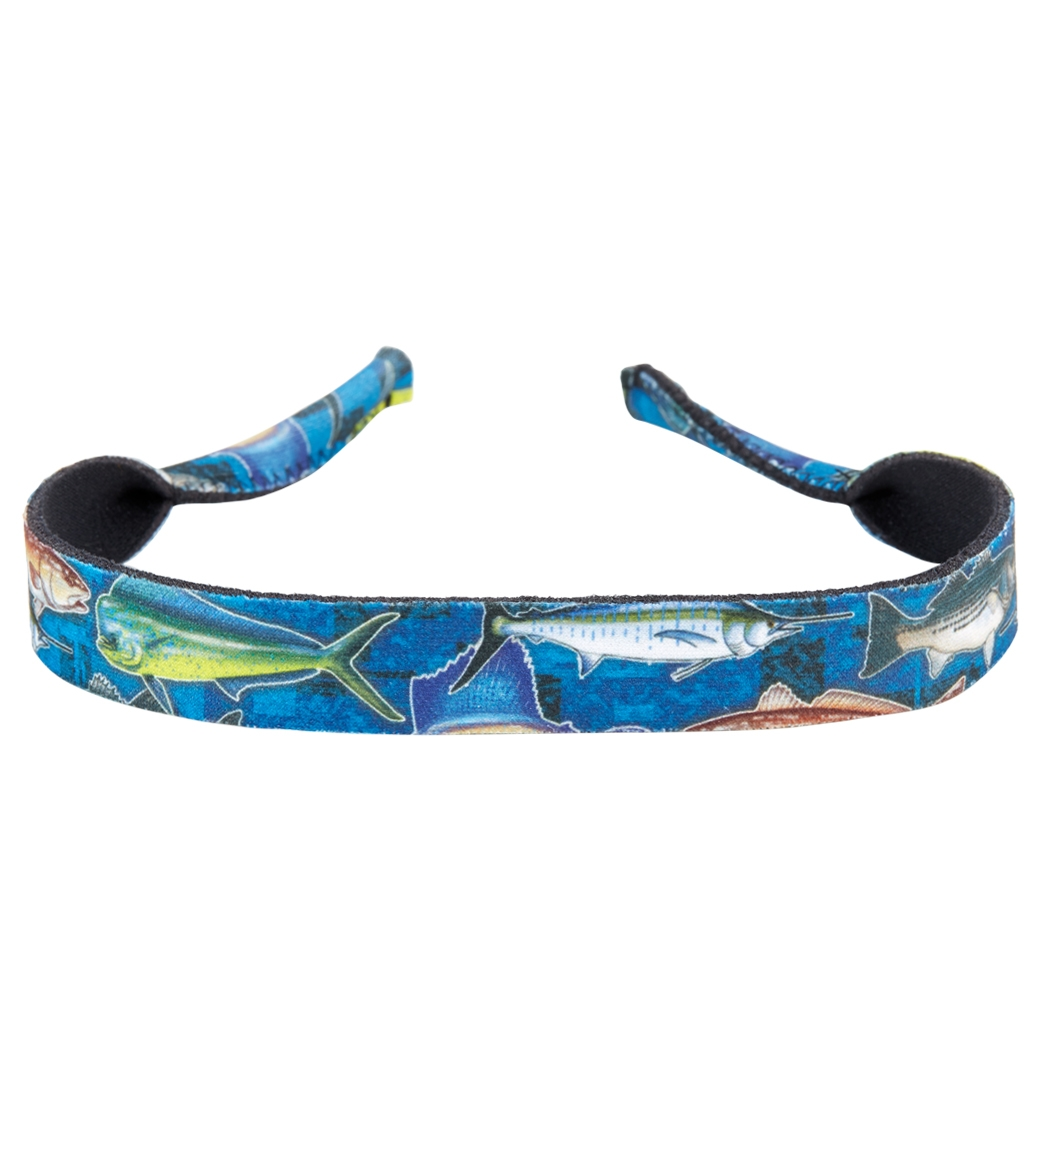 c0f8d054a6e8 Croakies Fishing Print Floating Eyewear Retainer at SwimOutlet.com